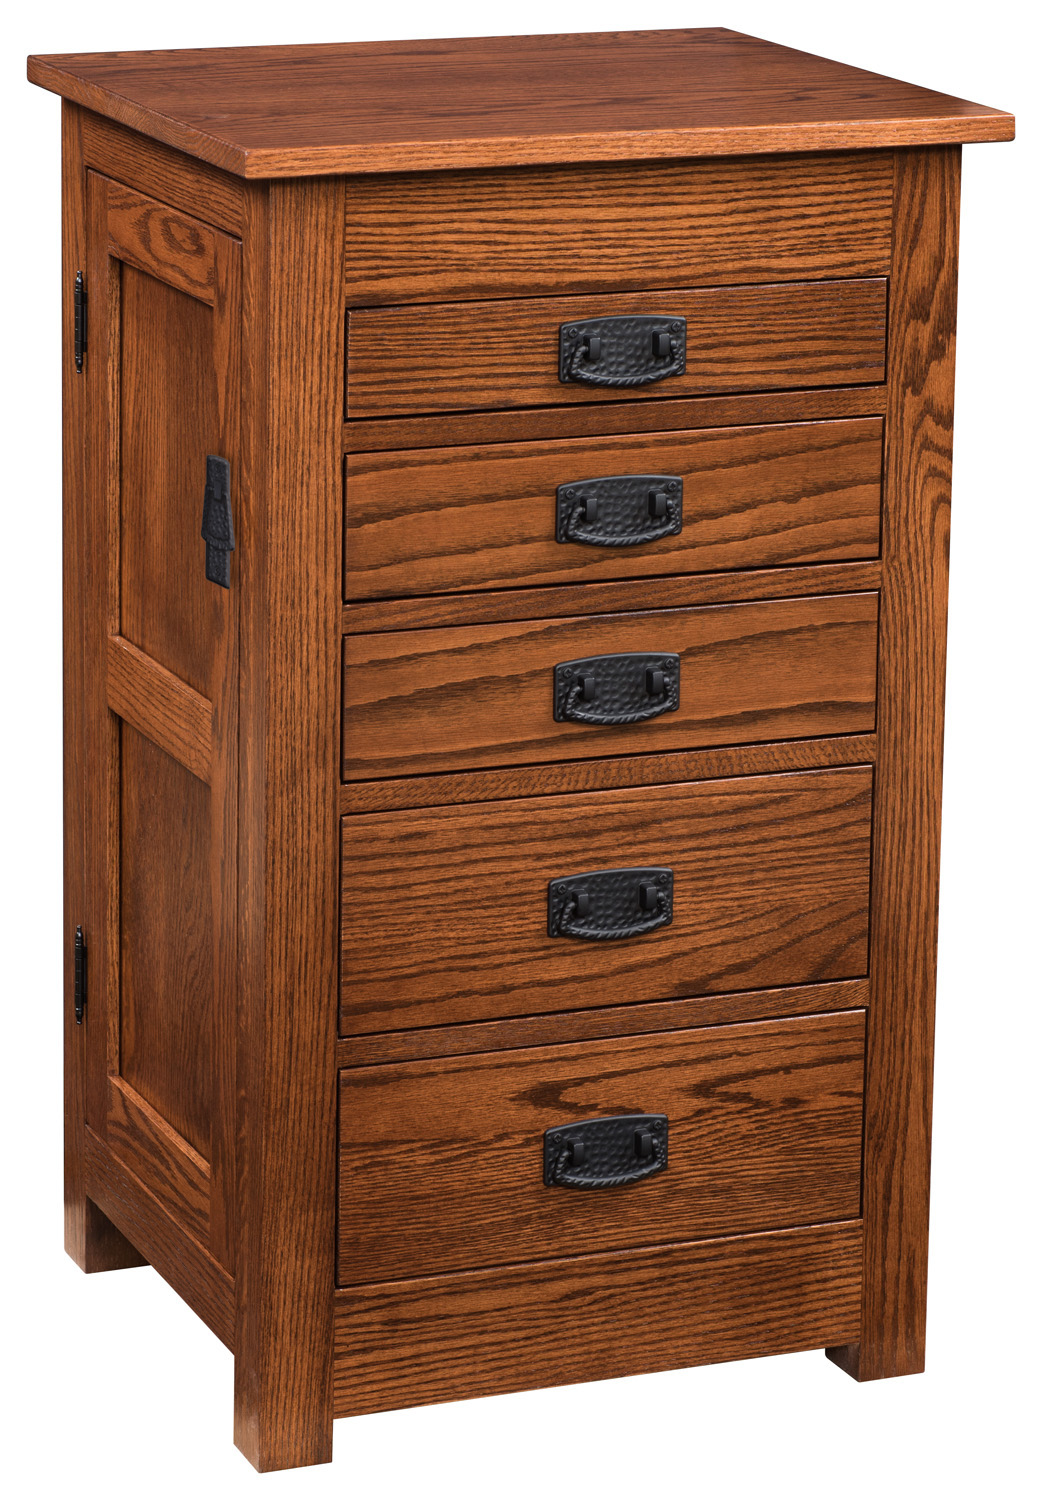 35 in. Flush Mission Jewelry Armoire - Solid Wood